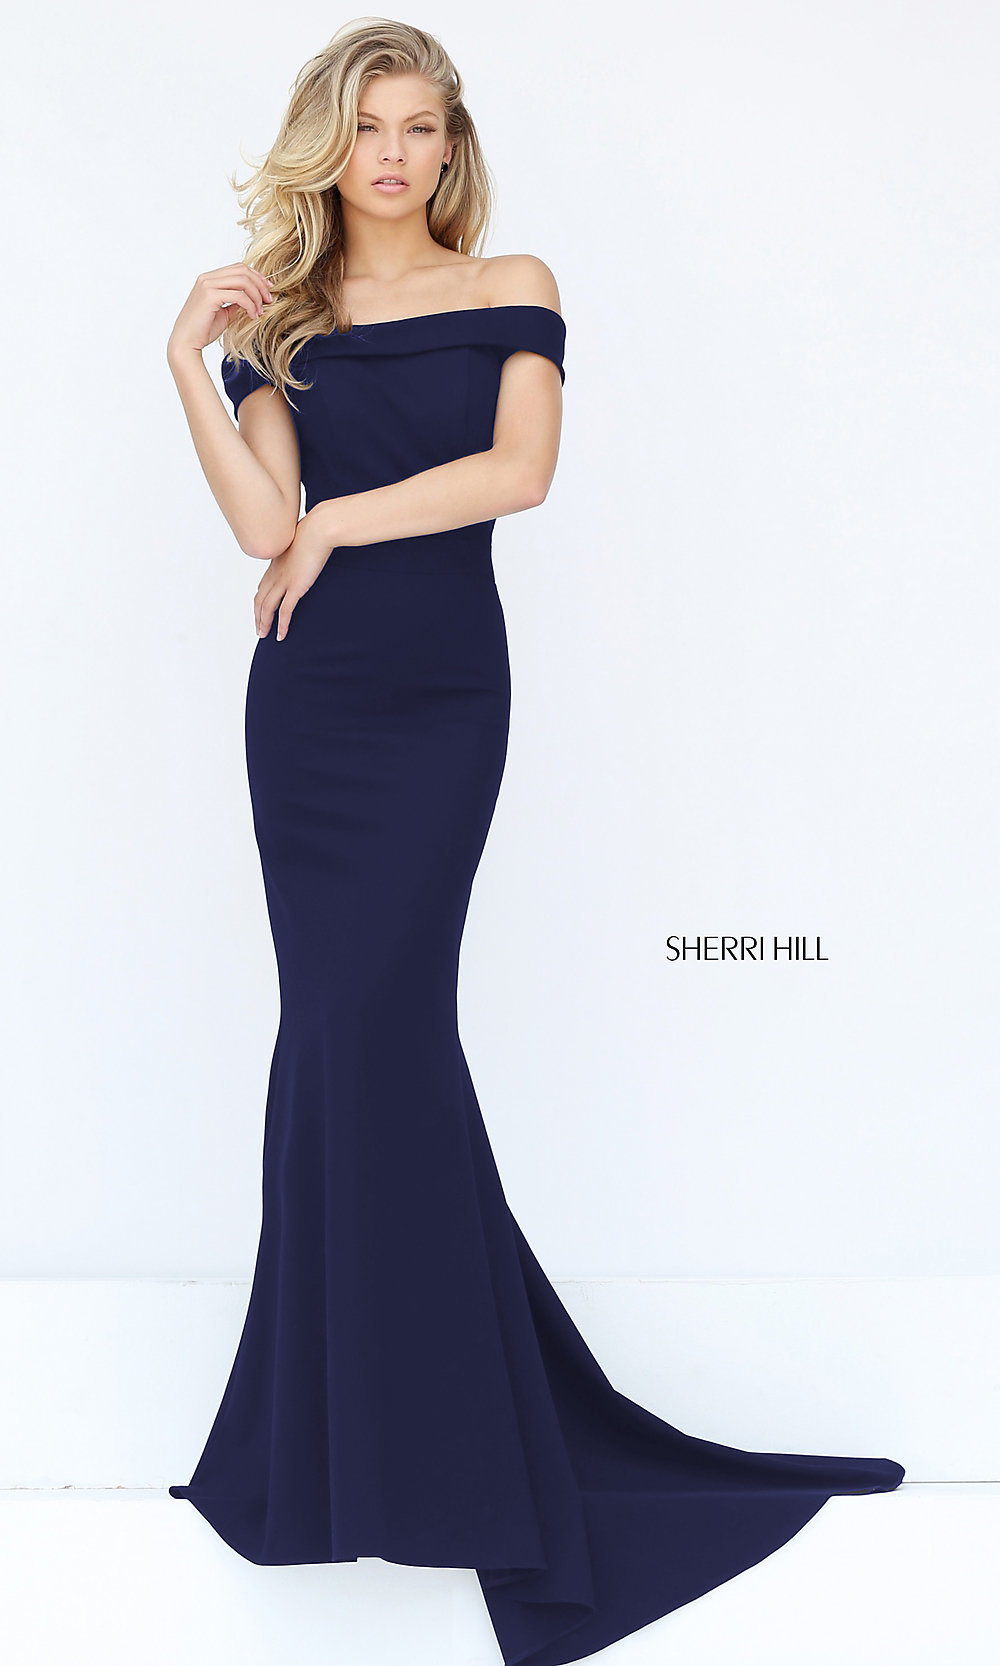 Ball gown prom dresses 2014 - Loved